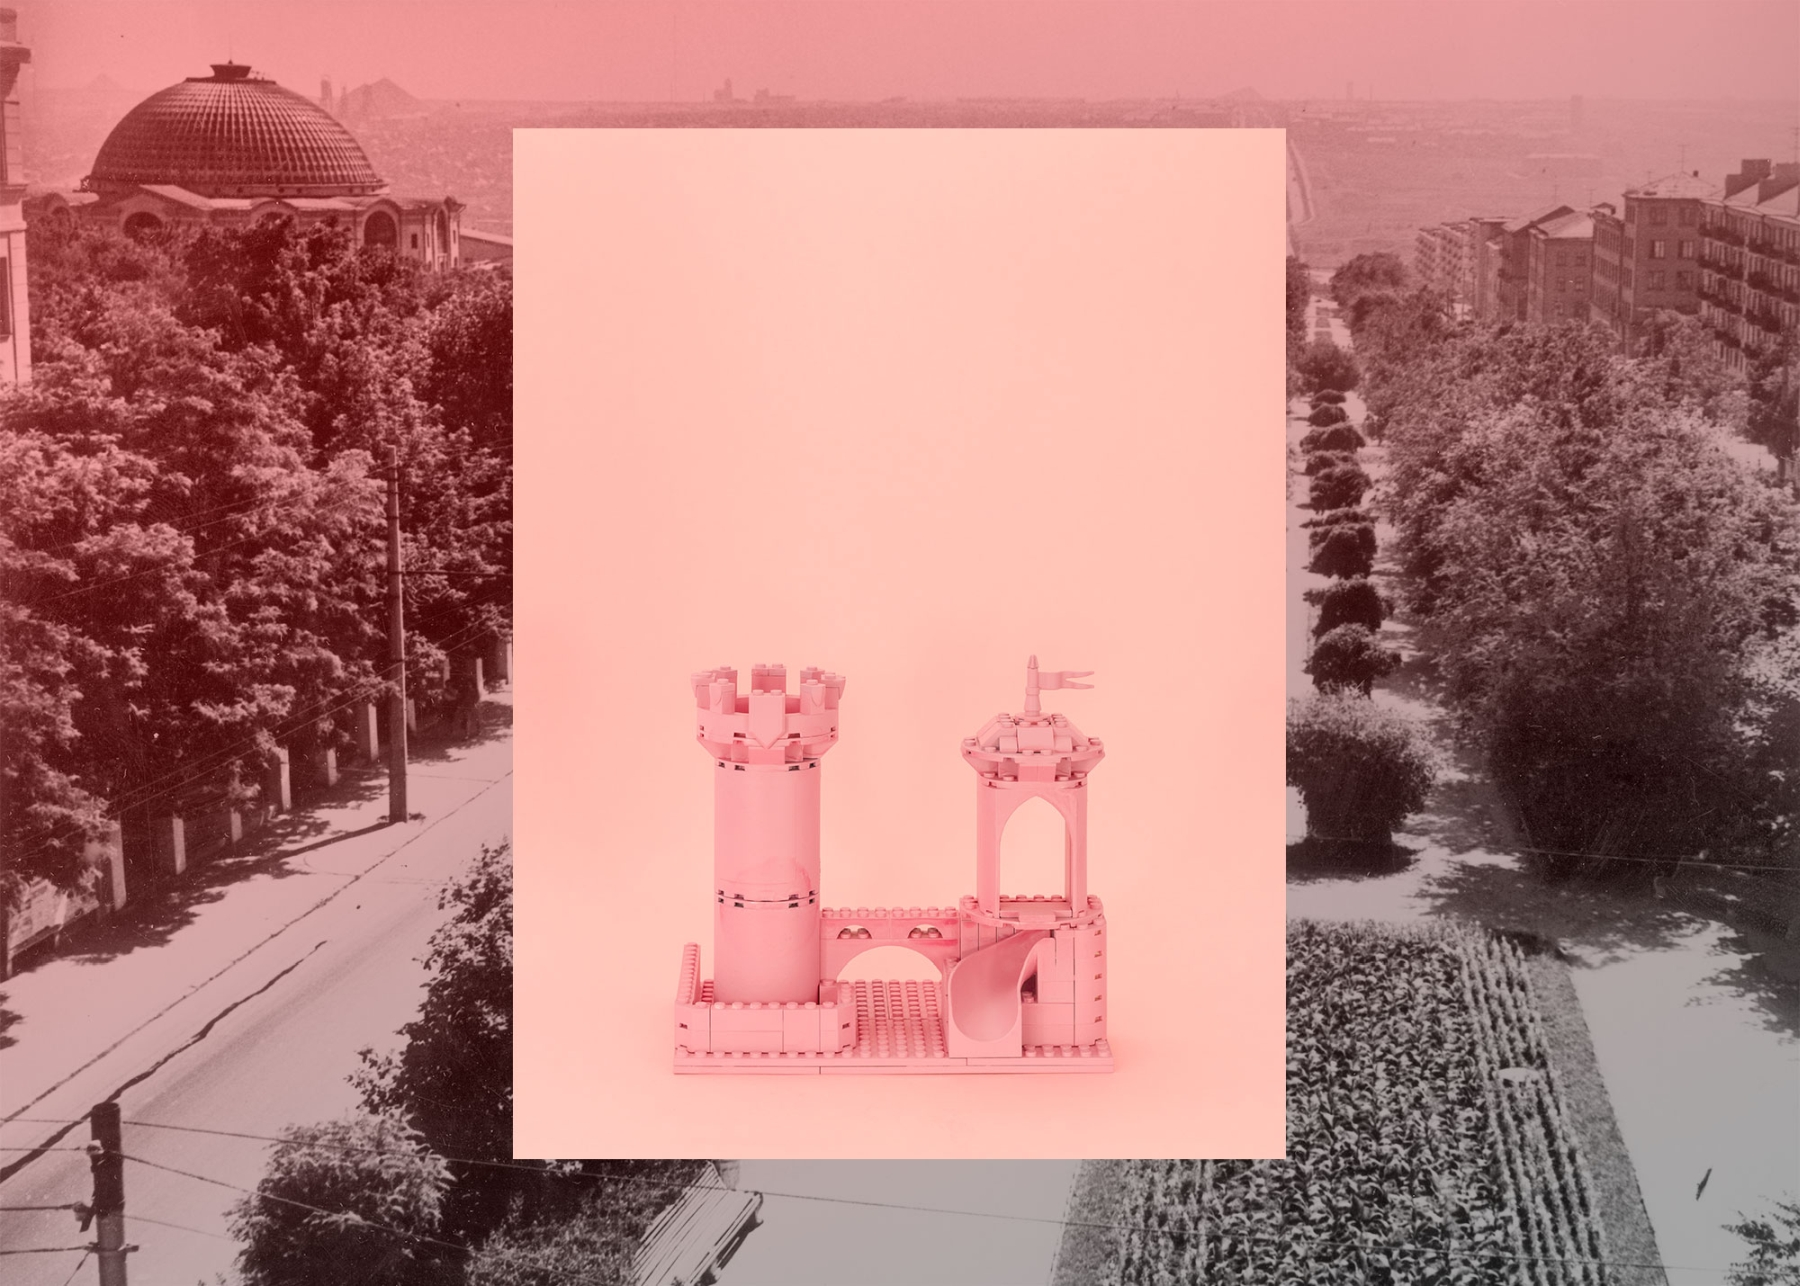 Image from the project 'Fairy Castles of Donetsk', in collaboration with Lia Dostlieva